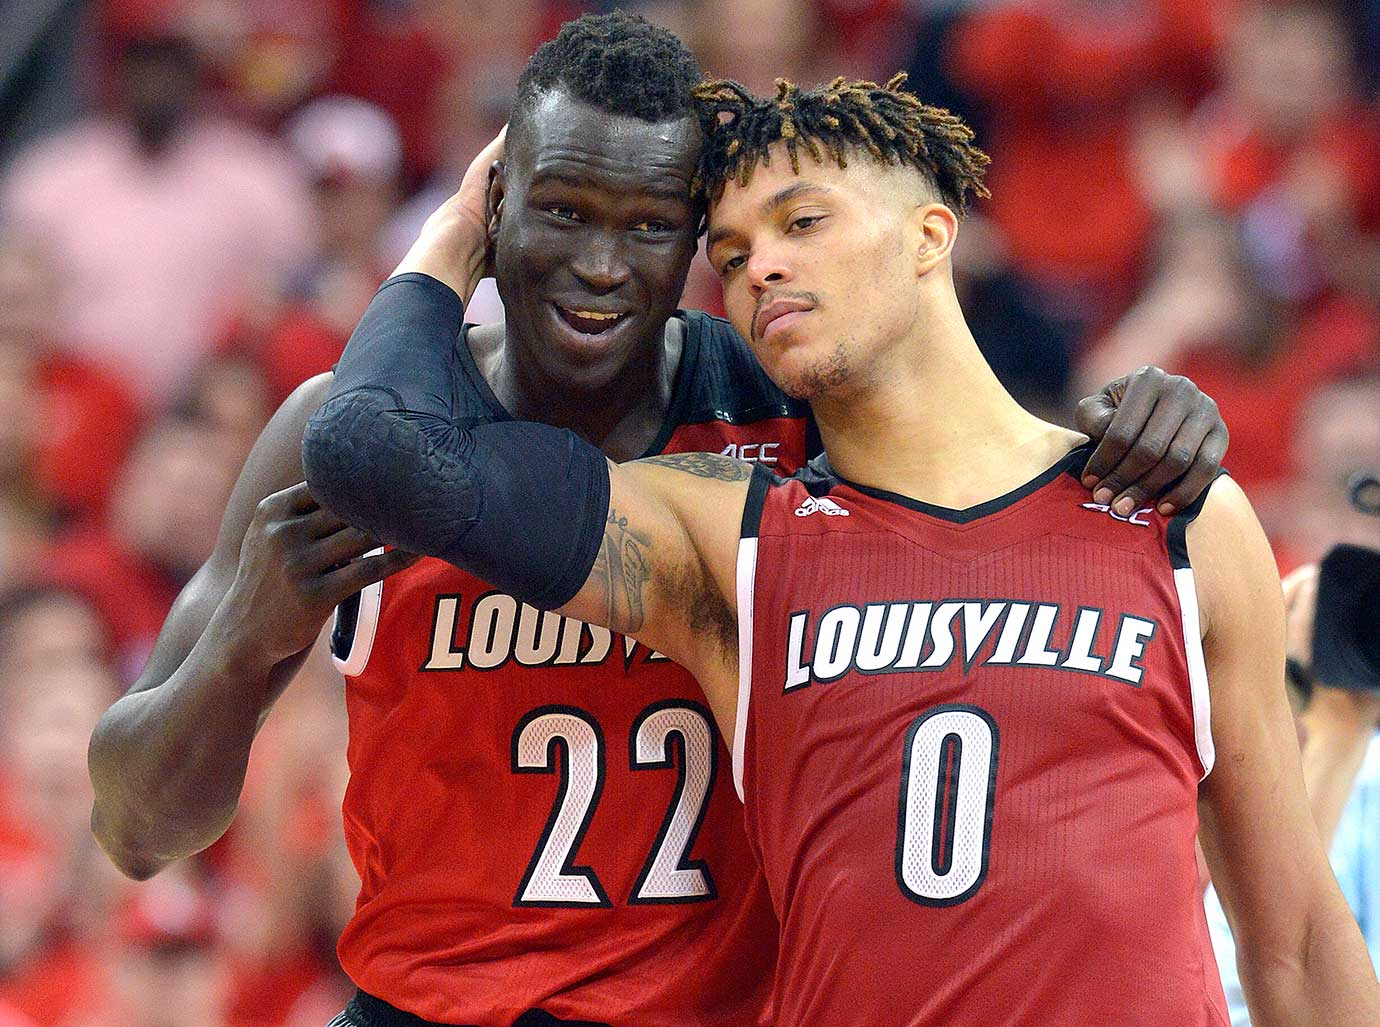 Louisville's Damion Lee (0) and Deng Adel at the end of a 56-53 win over Georgia Tech.